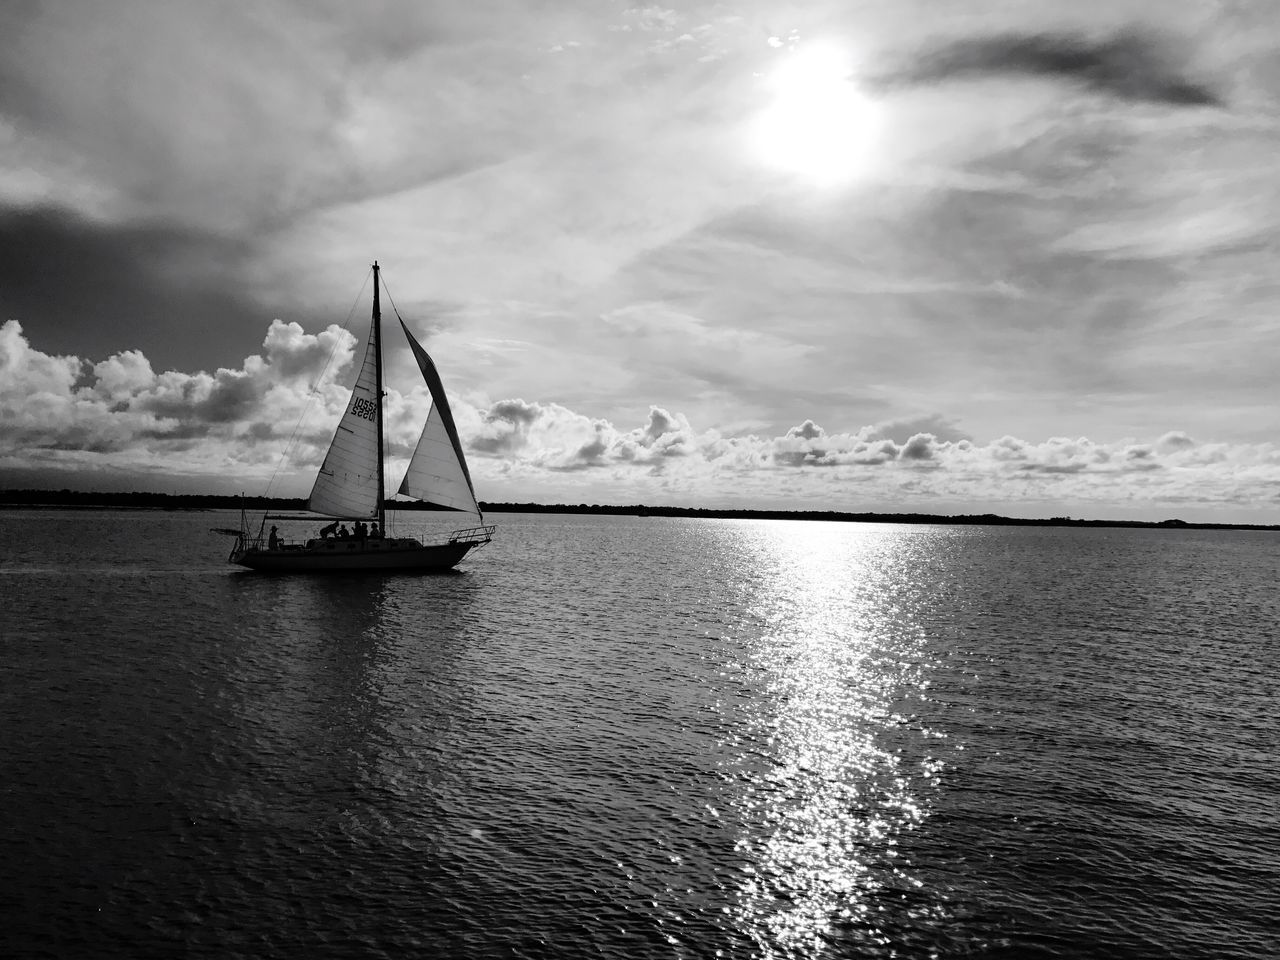 Ponce Inlet New Smyrna Beach Sail Boat Ocean Cloud - Sky Sky Water Nautical Vessel Sea Waterfront Tranquility Scenics Sailboat Nature Tranquil Scene Beauty In Nature Sailing Outdoors Rippled Transportation Mast Day No People Horizon Over Water Coastal Beach